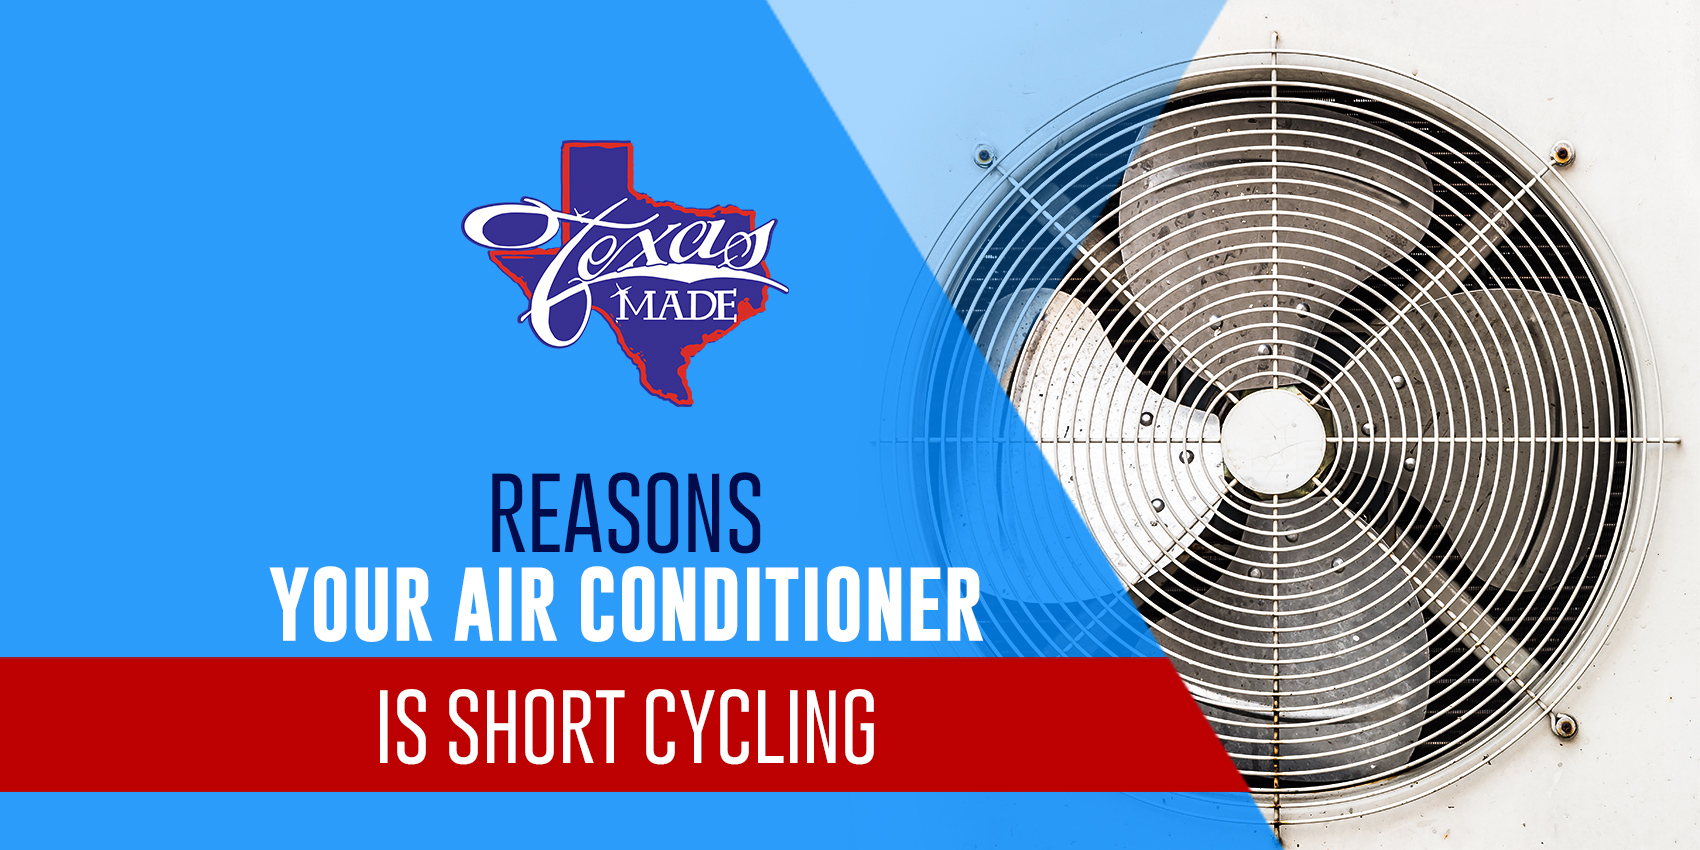 Reasons Your Air Conditioner is Short Cycling